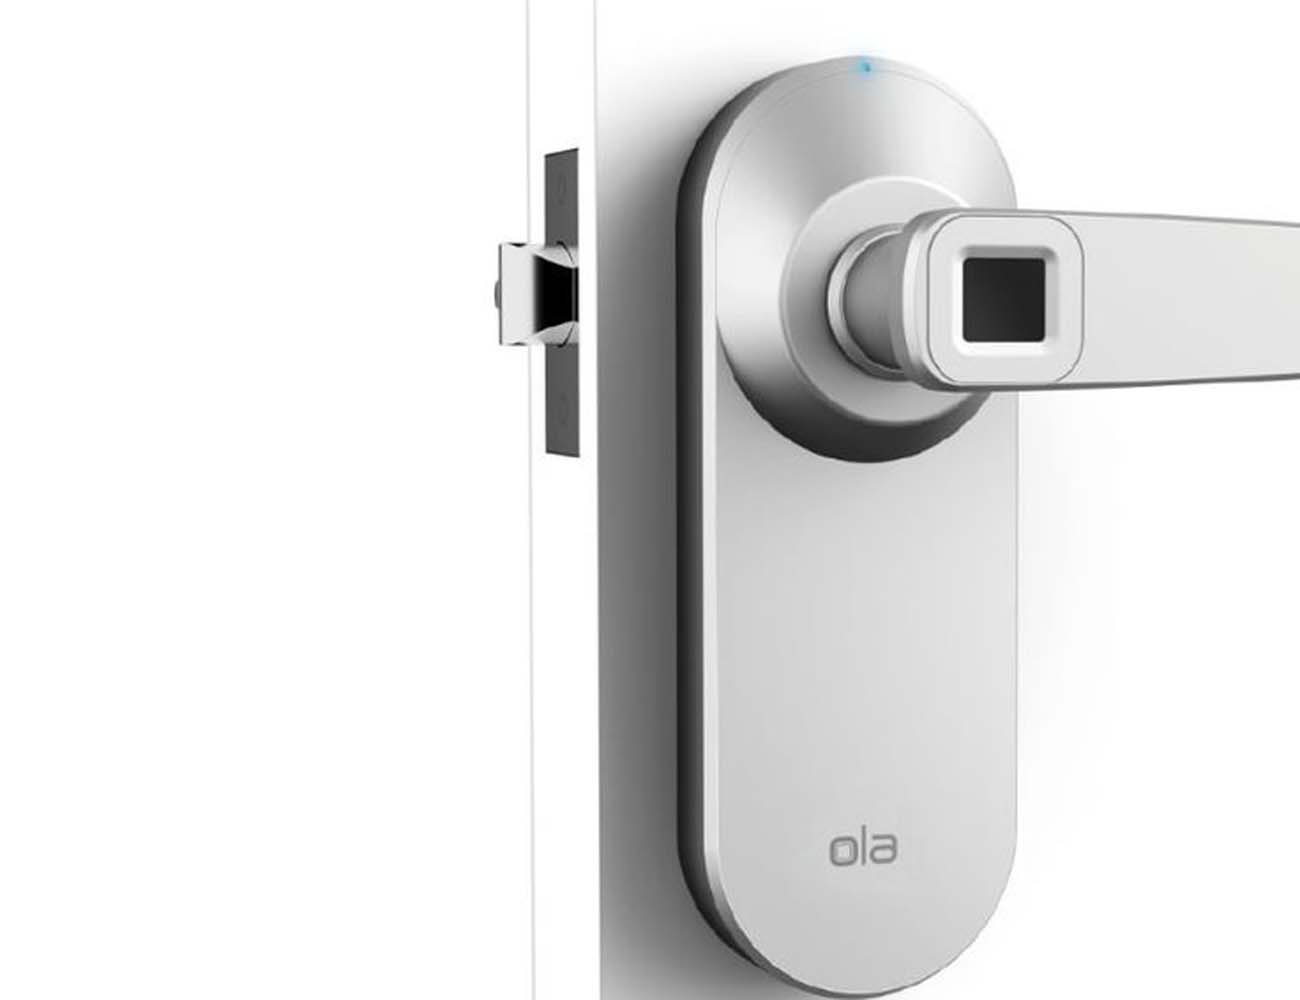 Ola Fingerprint Smart Lock – Open The Door To The Future